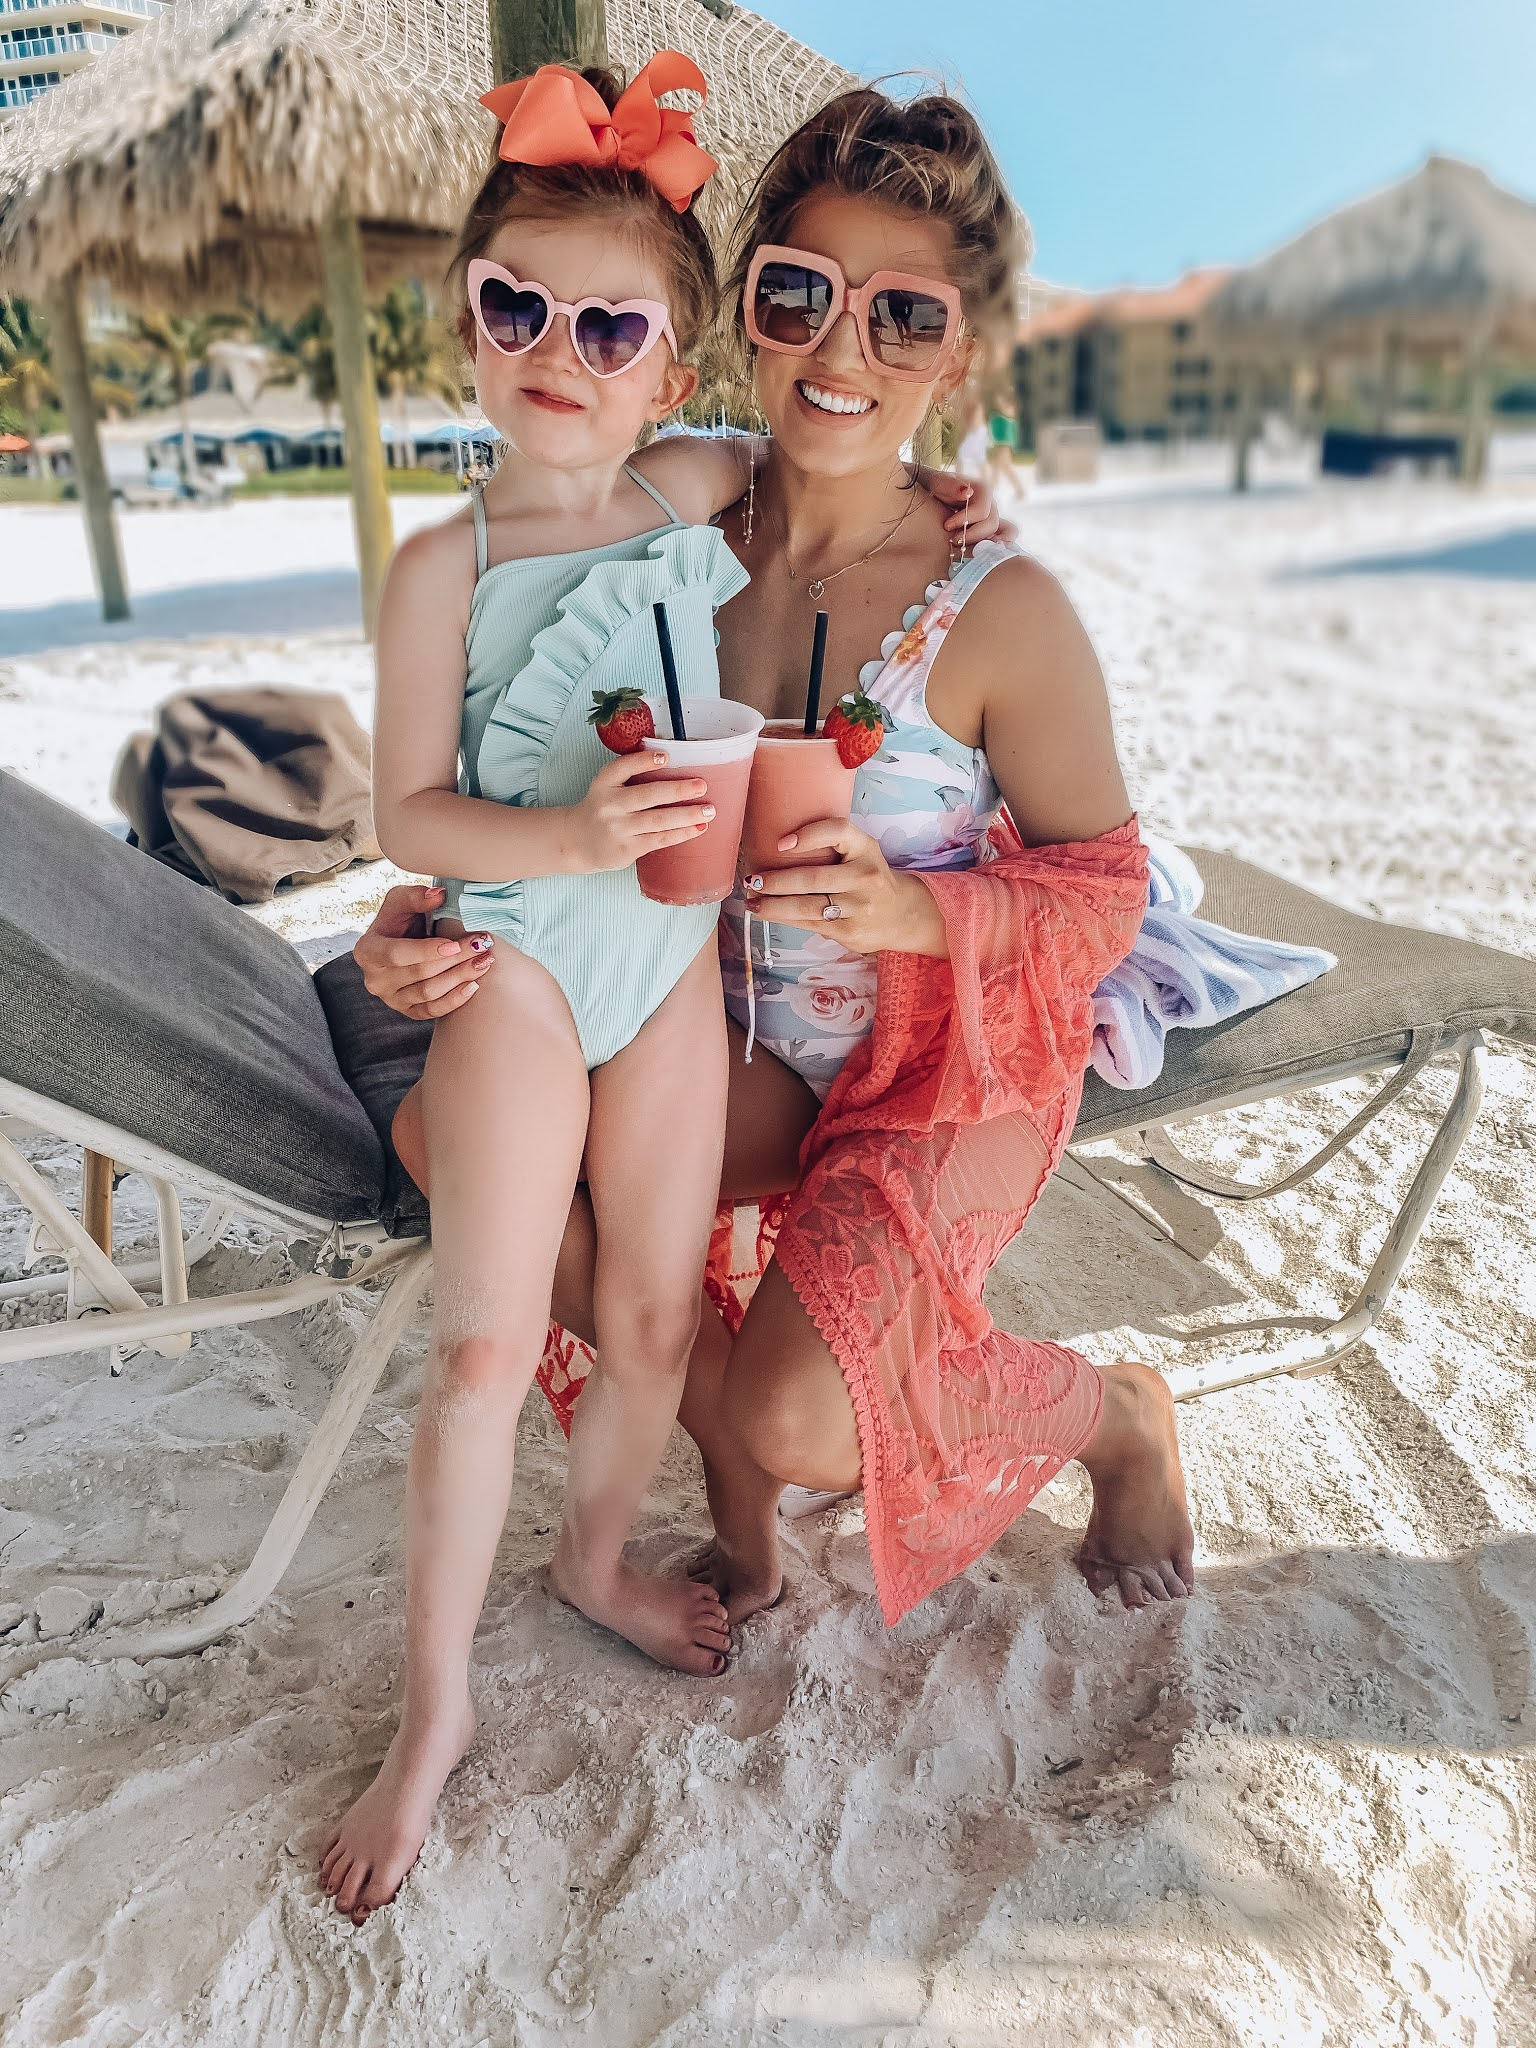 Our Vacation To The JW Marriott At Marco Island - Something Delightful Blog #traveldiaries #marcoislandvacation #beachvacation